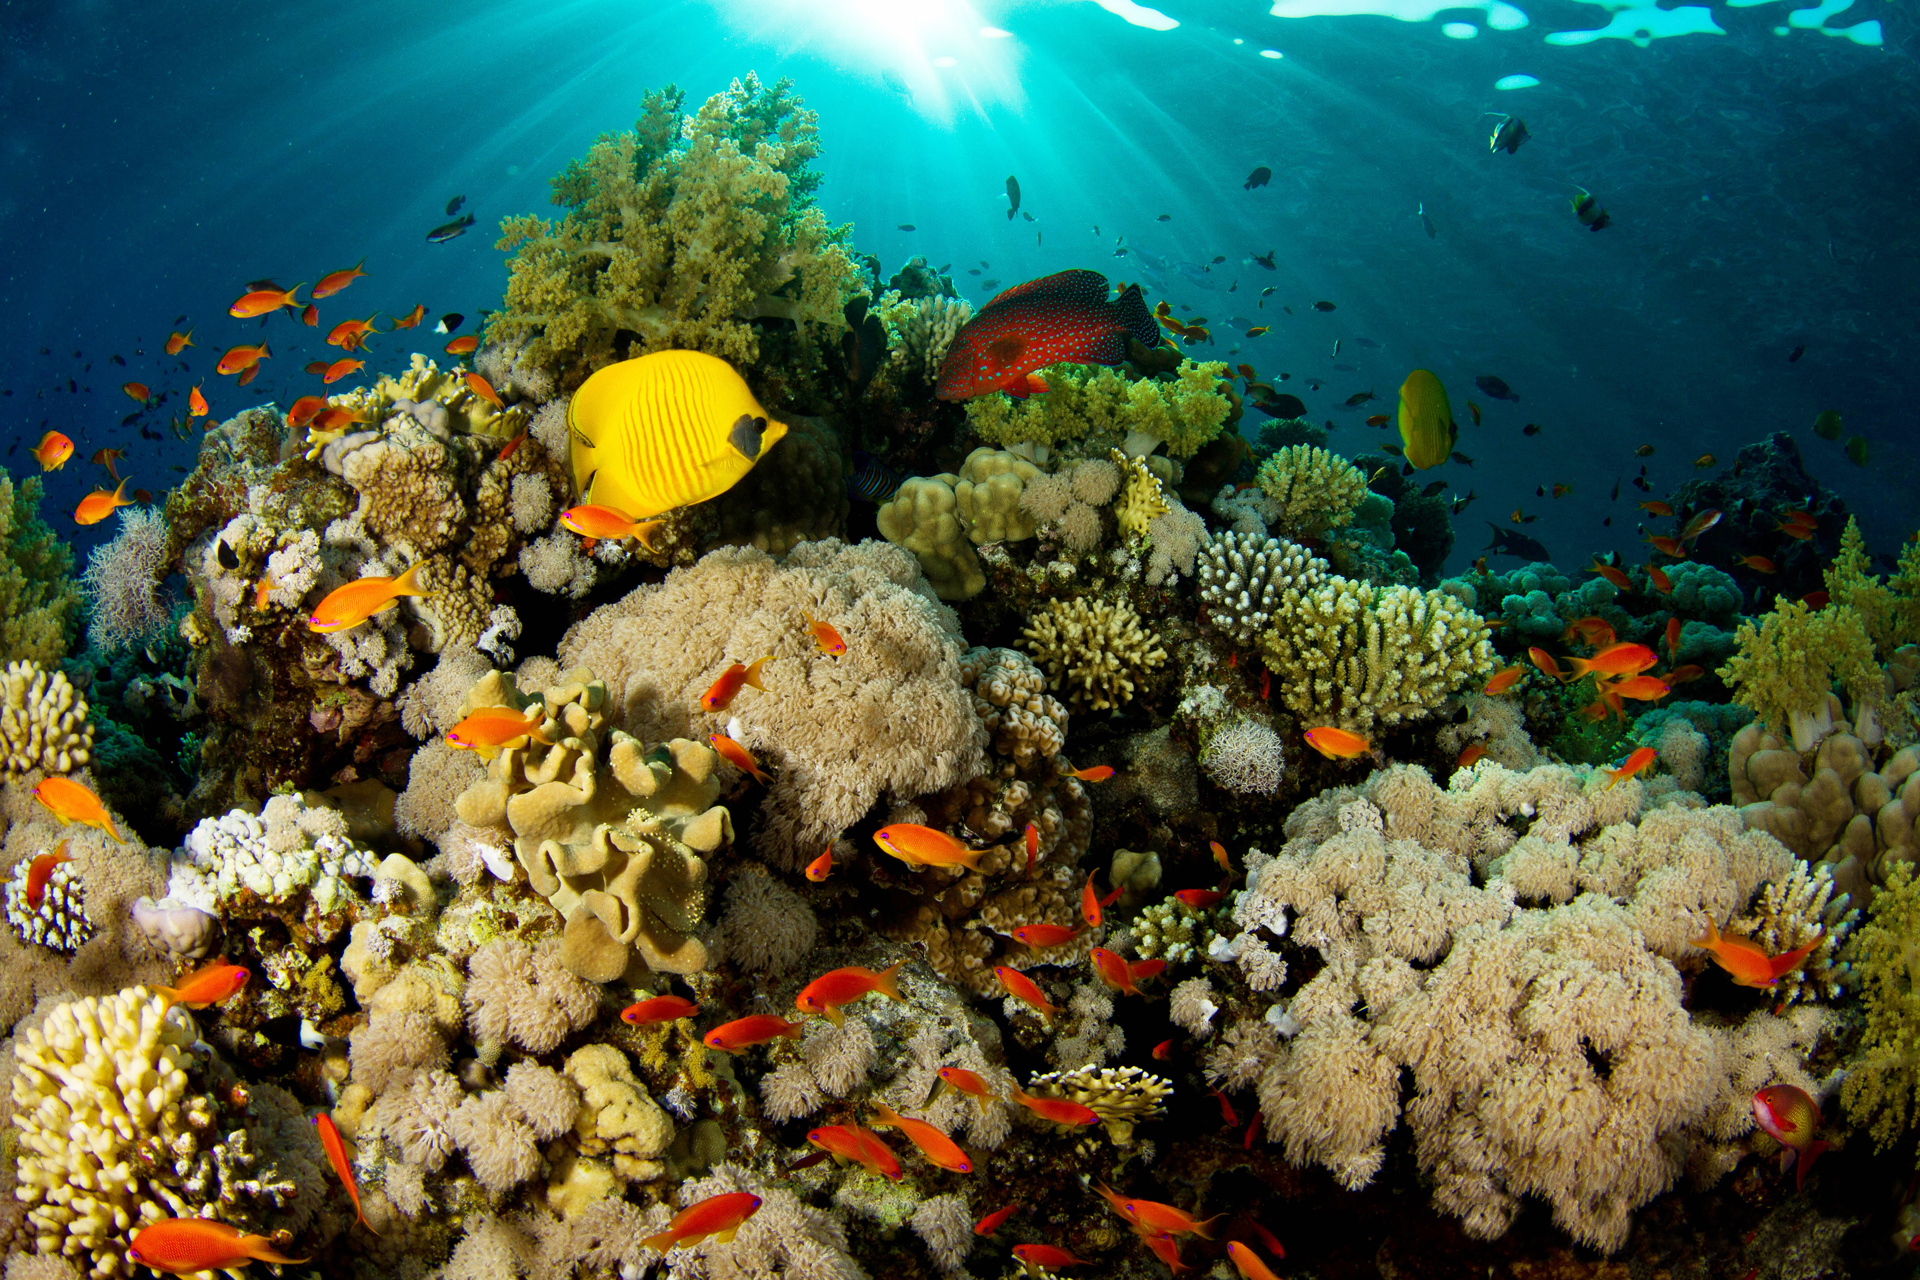 Image: Underwater, fish, coral, reef, surface, rays